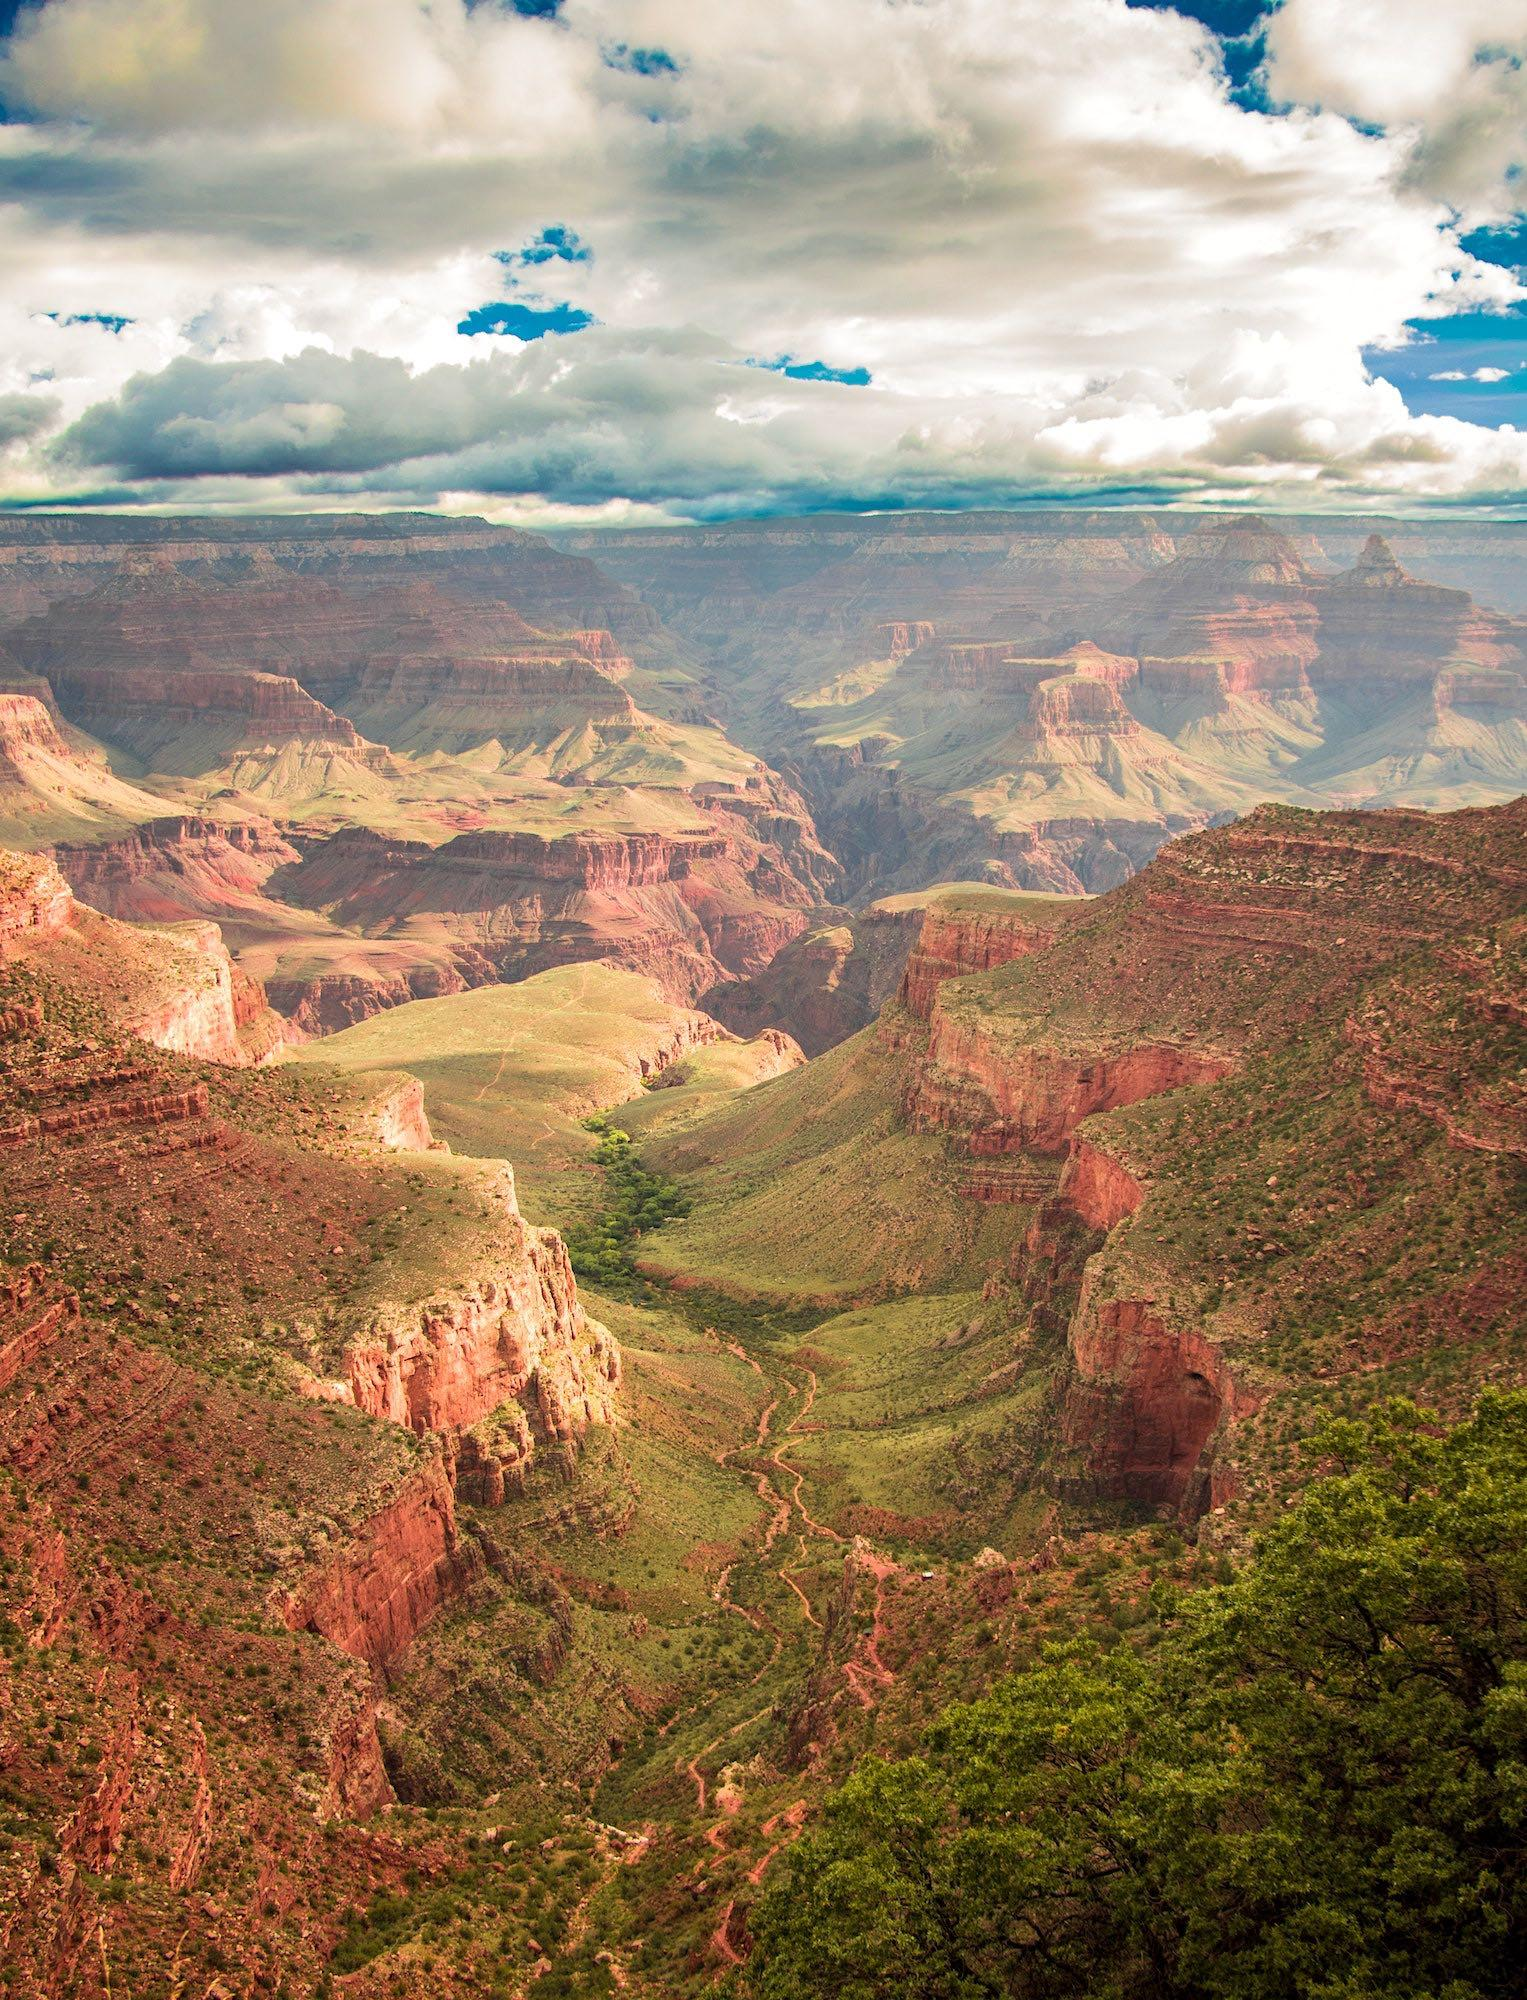 A natural World Heritage site, the Grand Canyon in Arizona, USA is considered one of the finest examples of arid-land erosion in the world. - © Lukas Kloeppel